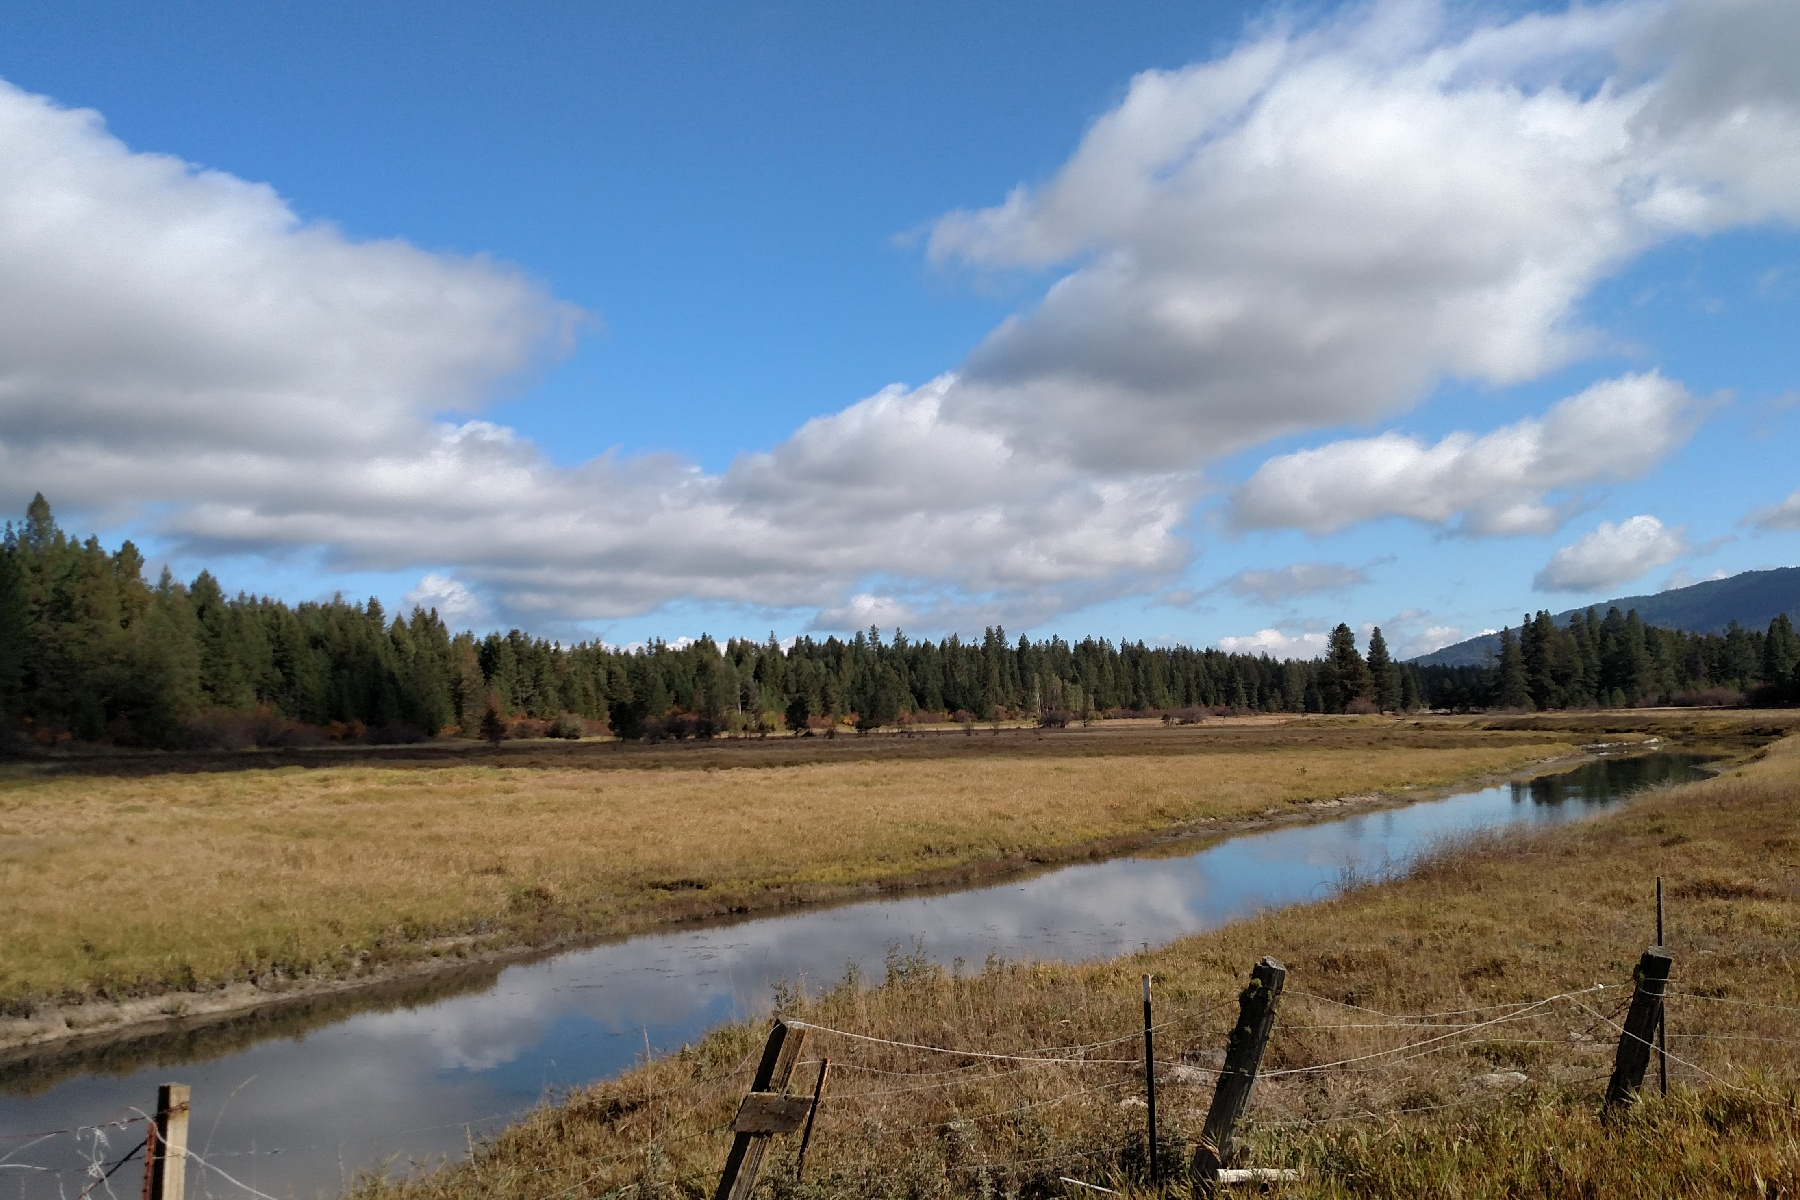 Terreno por un Venta en Beautiful North Idaho Land 8353 Spirit Lake Cut-Off Rd Priest River, Idaho, 83856 Estados Unidos